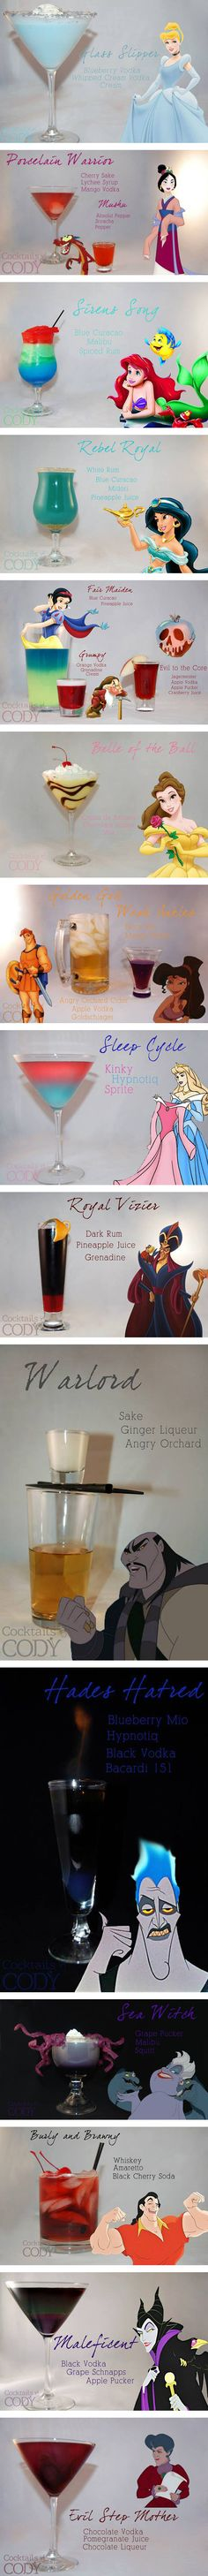 Disney princess themed cocktails @Theresa Burger Burger Burger Burger Gillie we need to try this!